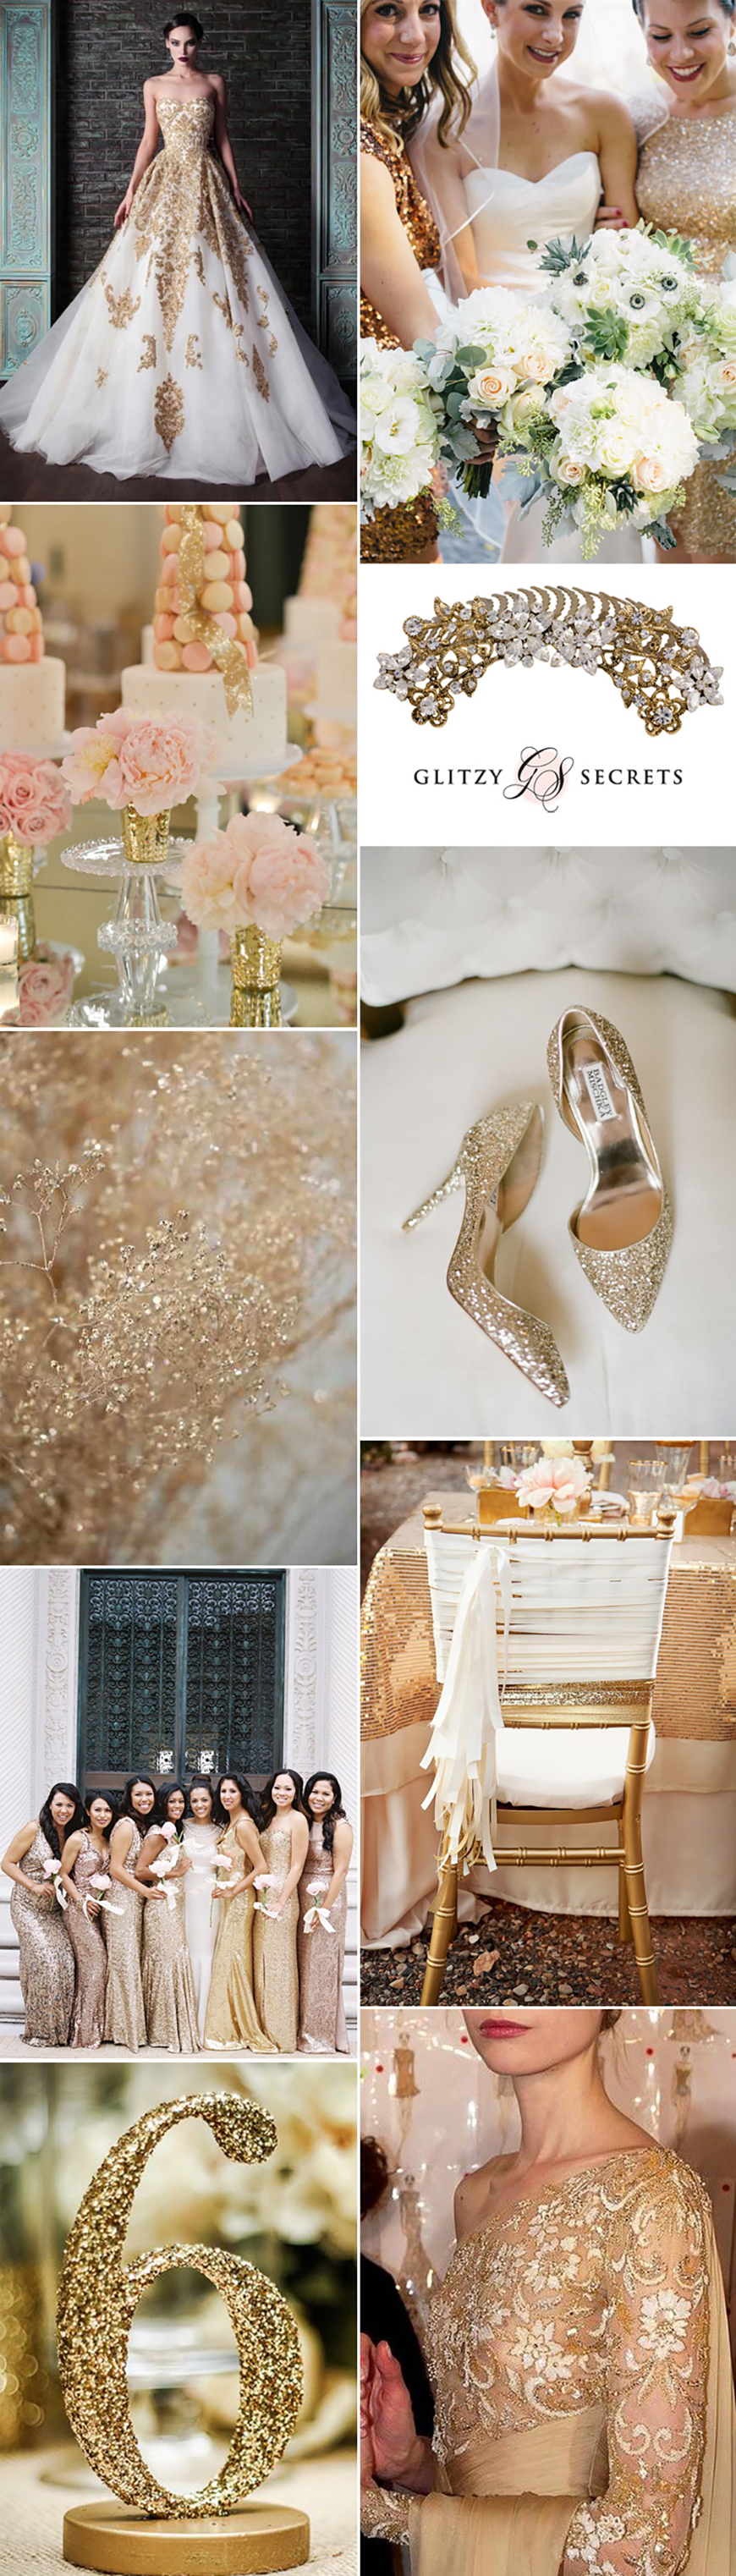 Wedding Ideas by Colour: Gold Wedding Dresses - Complete the look | CHWV